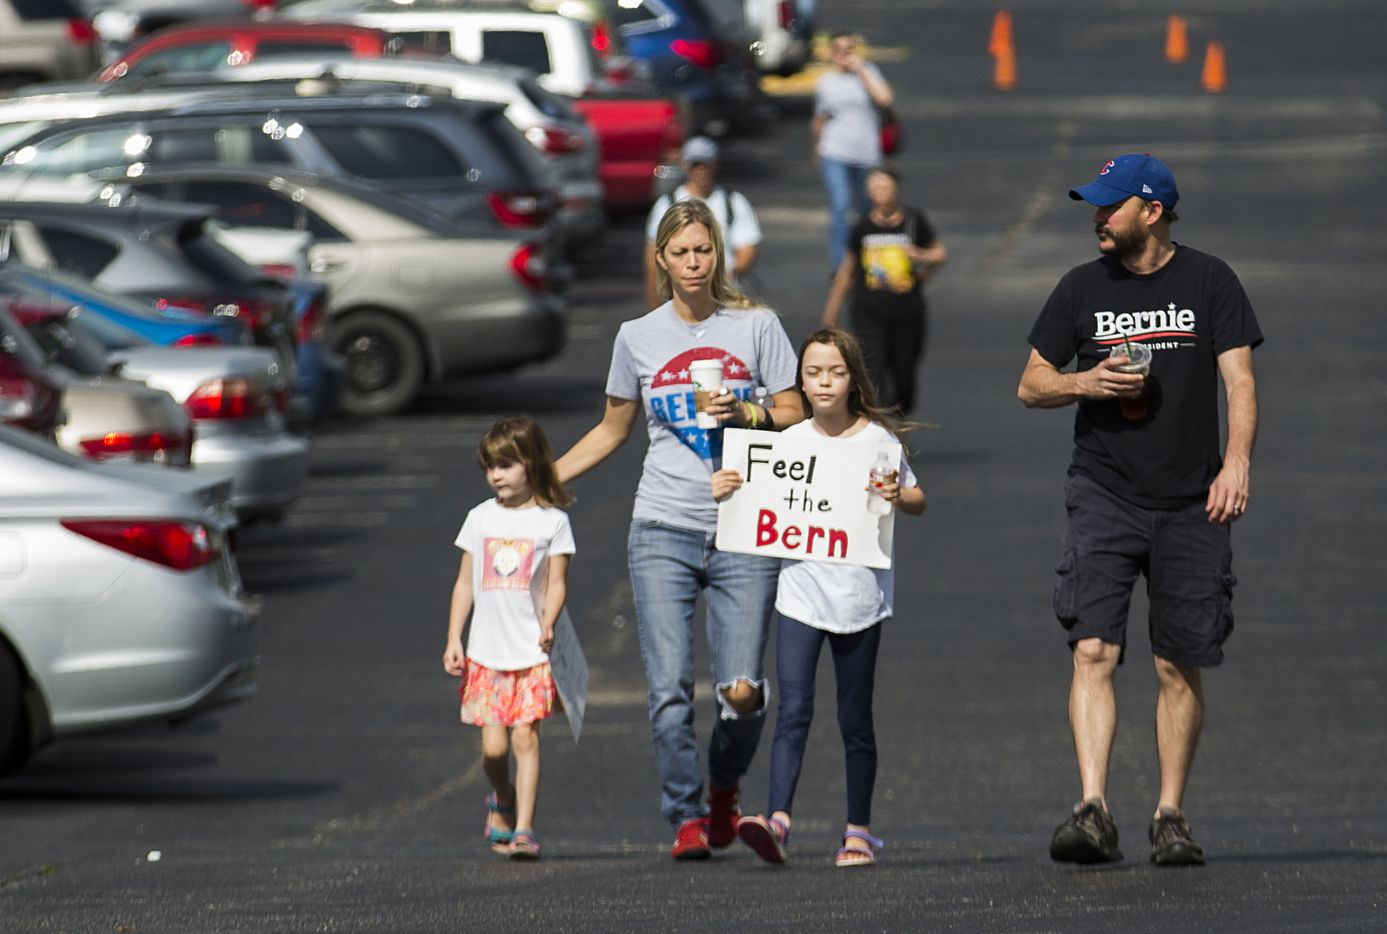 Supporters arrive for a rally by Vermont senator Bernie Sanders rally at the Verizon Theater on Thursday, April 20, 2017, in Grand Prairie, Texas. Sanders, the runner-up in the 2016 Democratic contest for president, appeared in North Texas to rally residents against President Donald Trump's agenda.